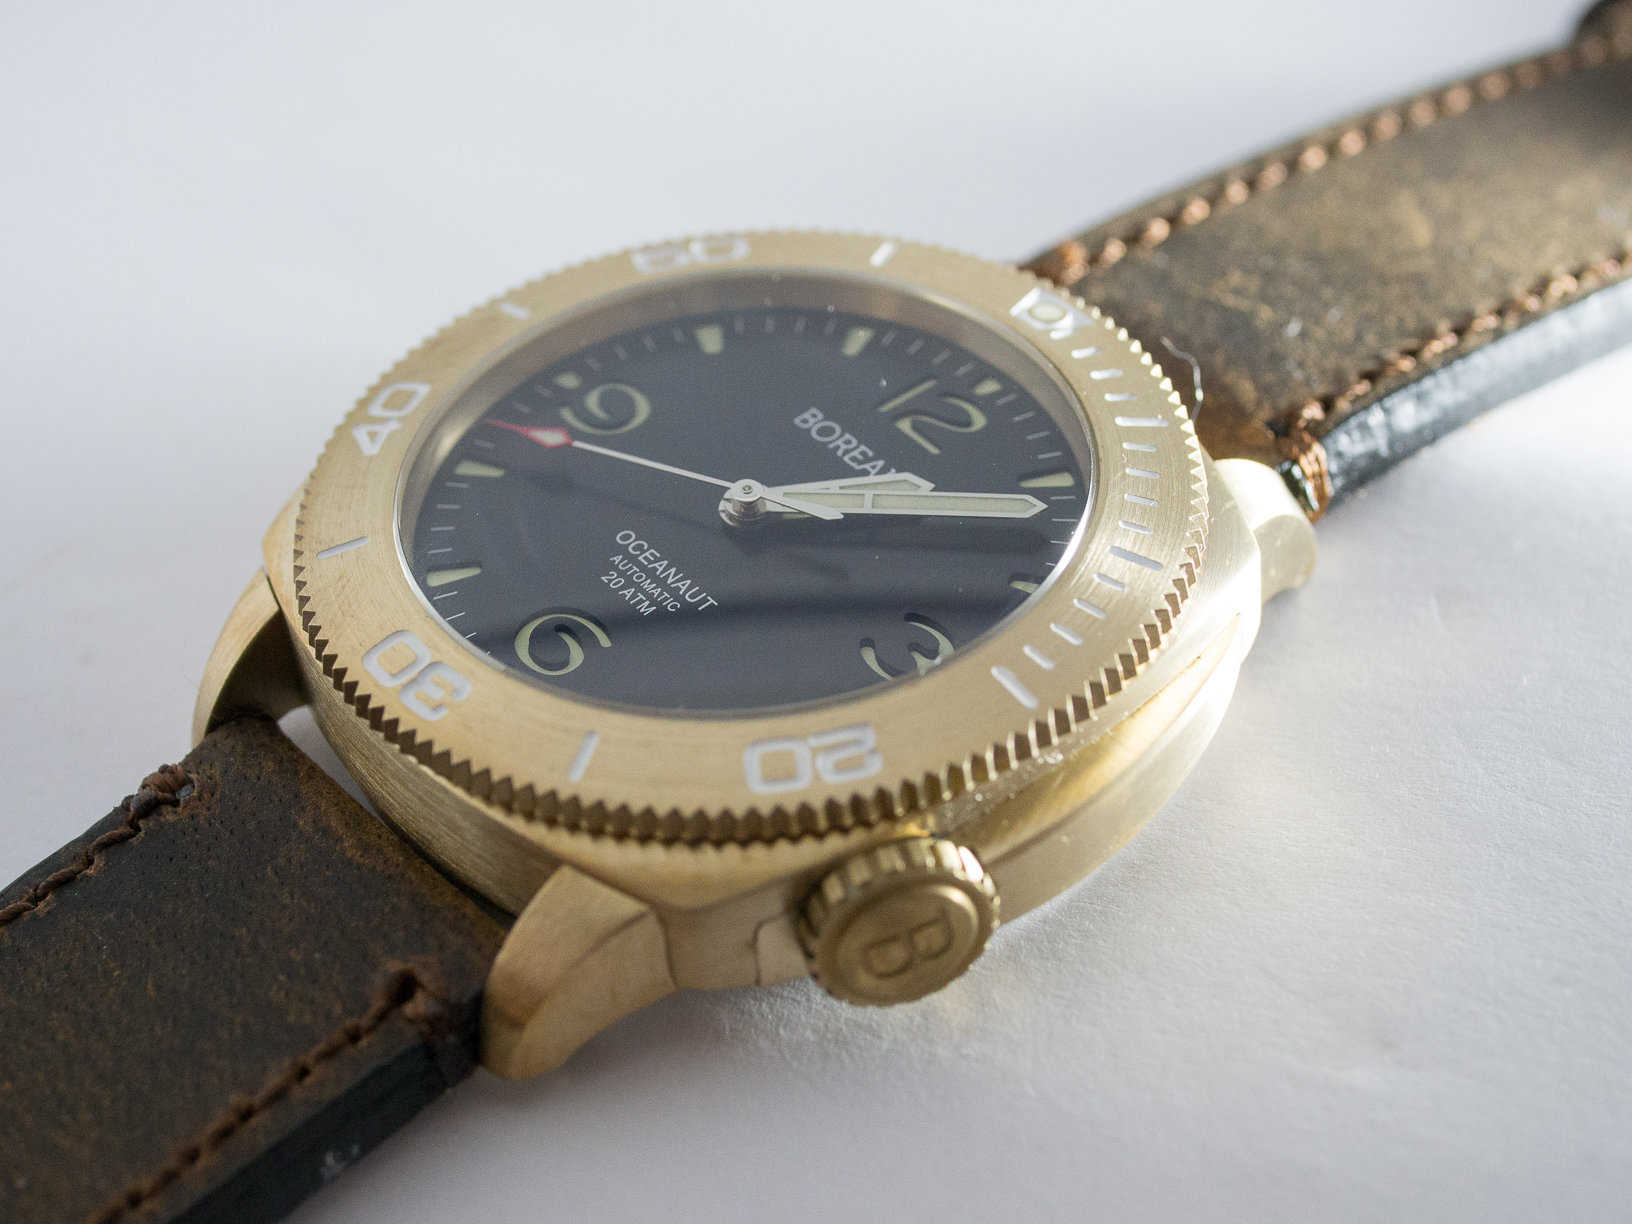 Borealis Oceanaut Aluminum Bronze Black No Date 200m NH35 Automatic Diver Watch